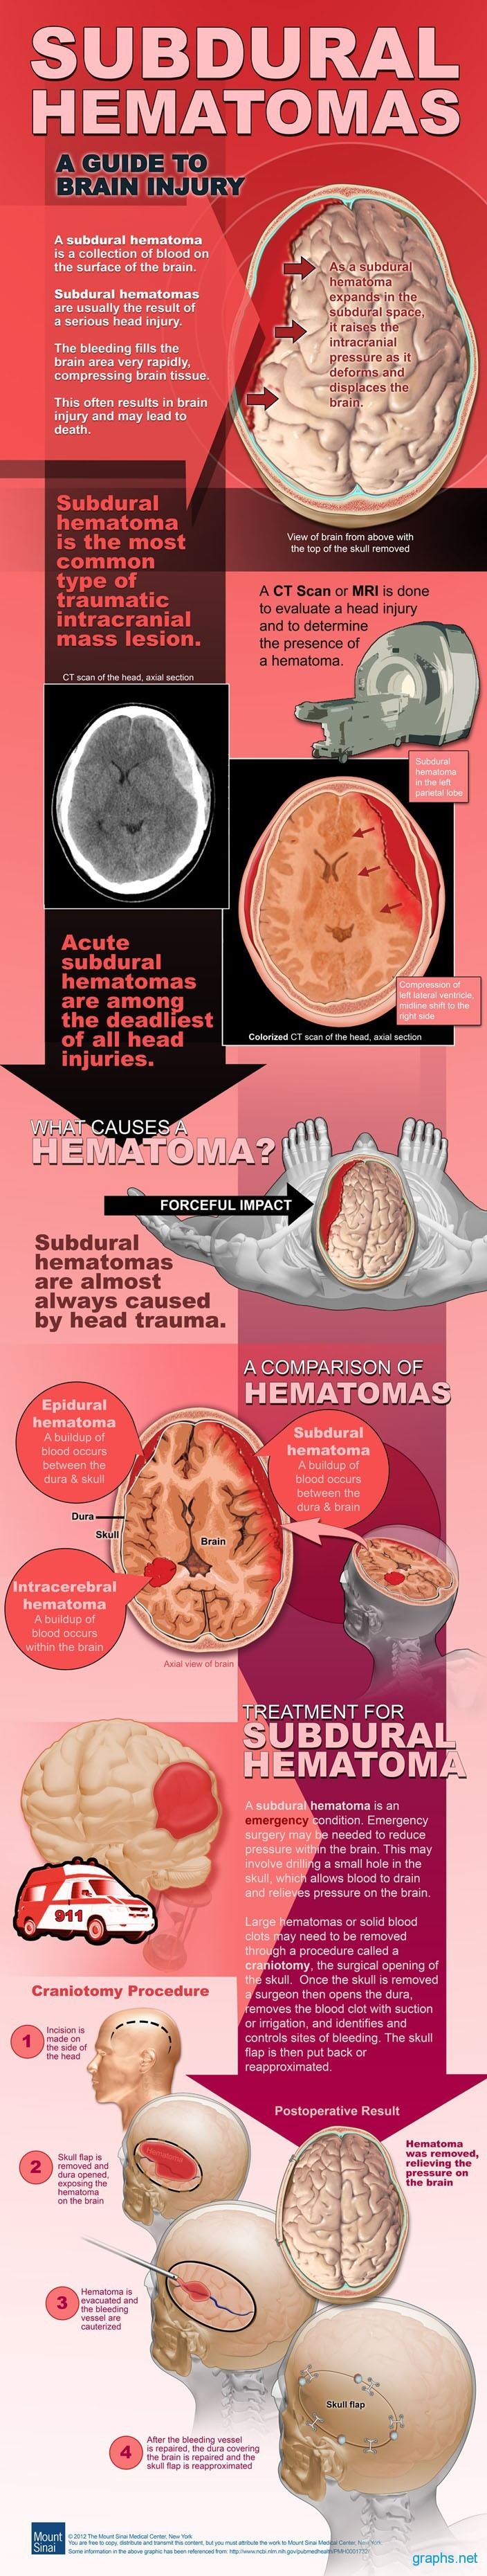 Subdural Hematoma Causes and Treatment